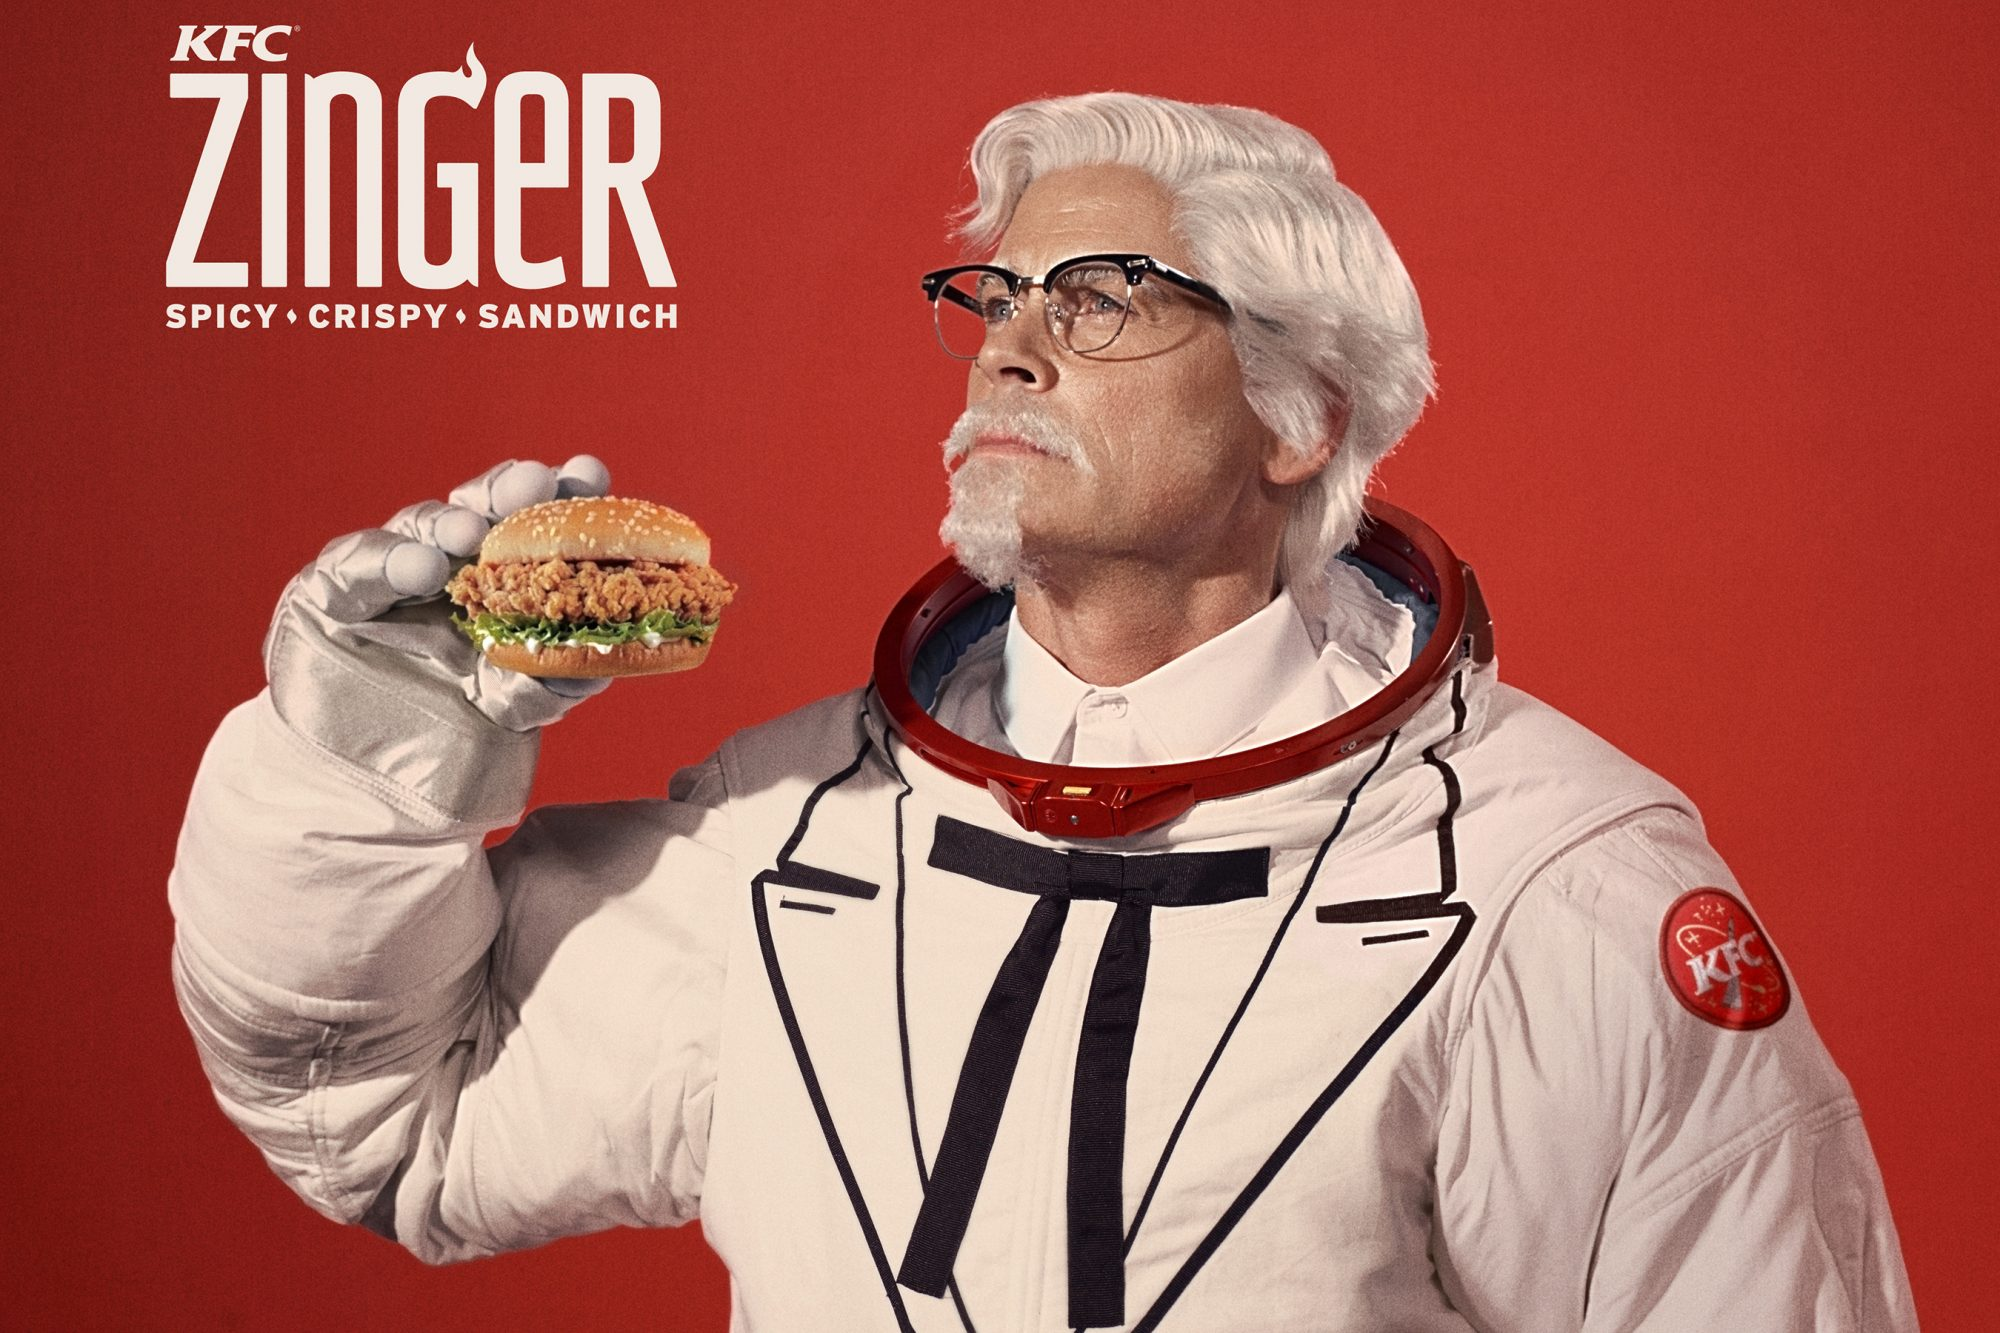 Rob Lowe debuts as KFC's new Colonel Sanders